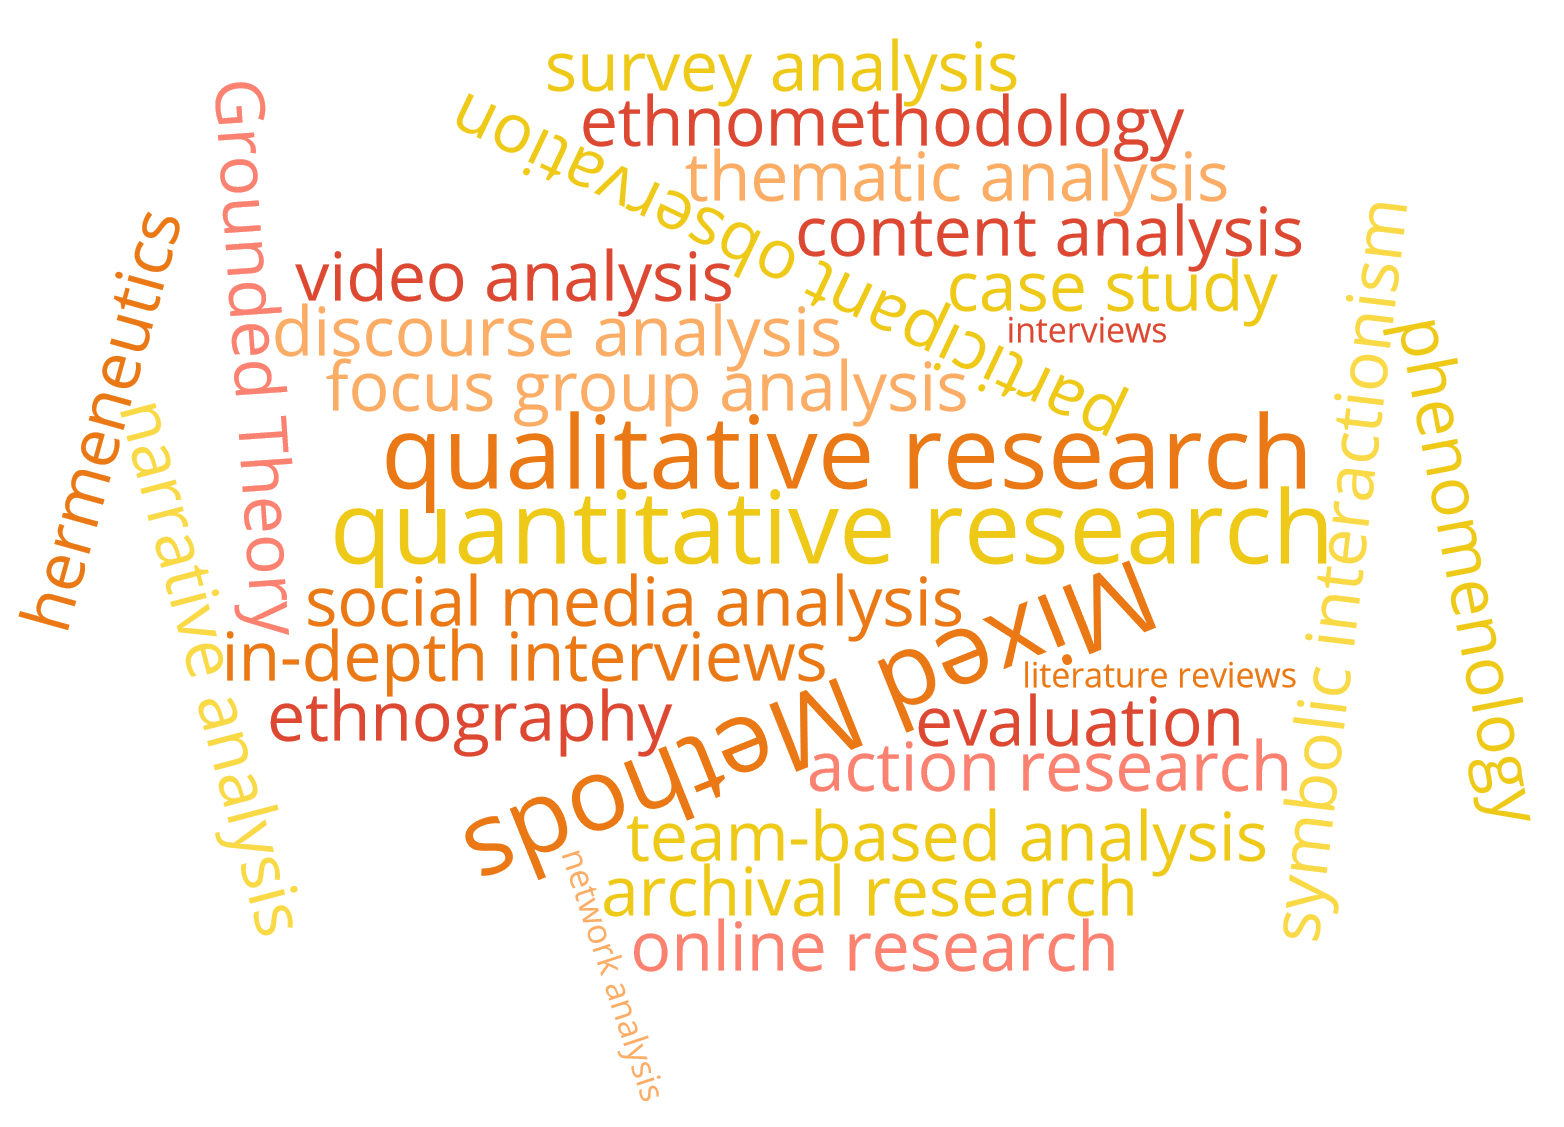 List of methods and methodologies used by MAXQDA researchers